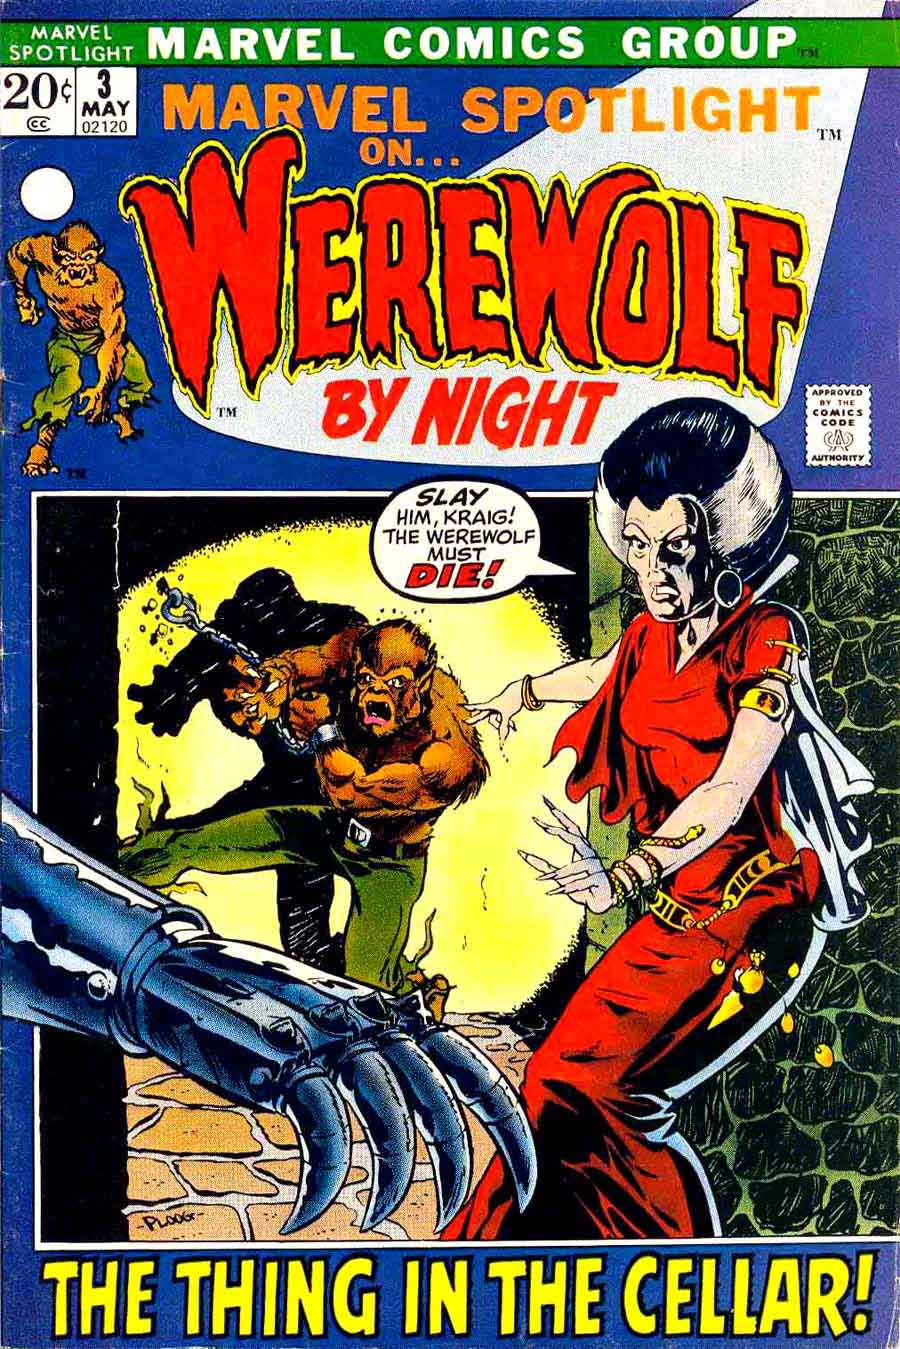 Marvel Spotlight v1 #3 Werewolf by Night marvel comic book cover art by Mike Ploog